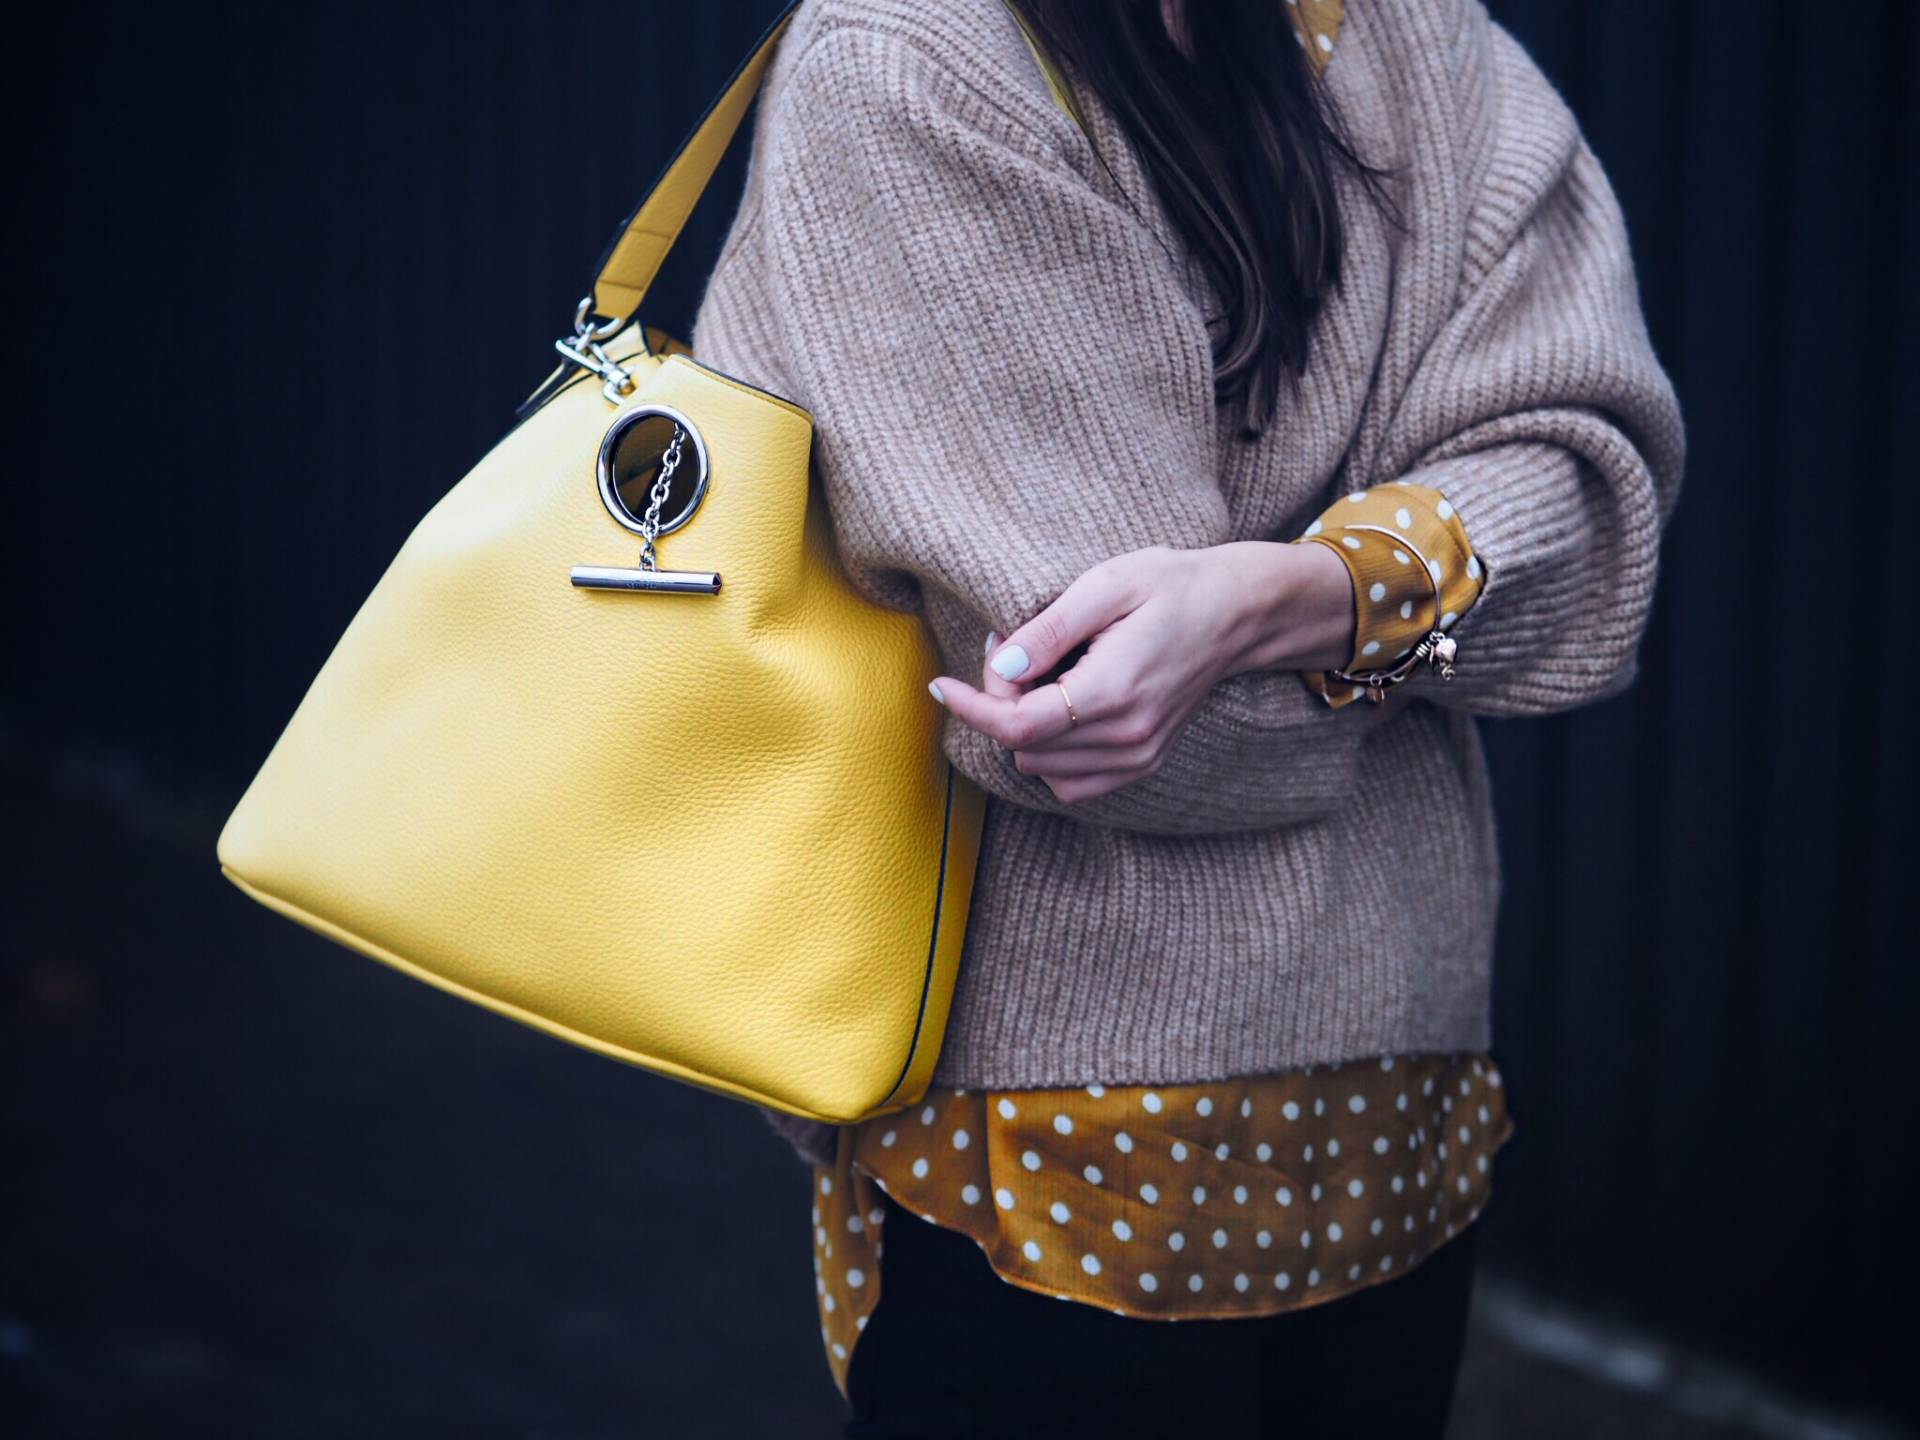 LAFOTKA-SCOTTISH-UK-FASHION-BLOGGER-WEARS-HENRI-BENDEL